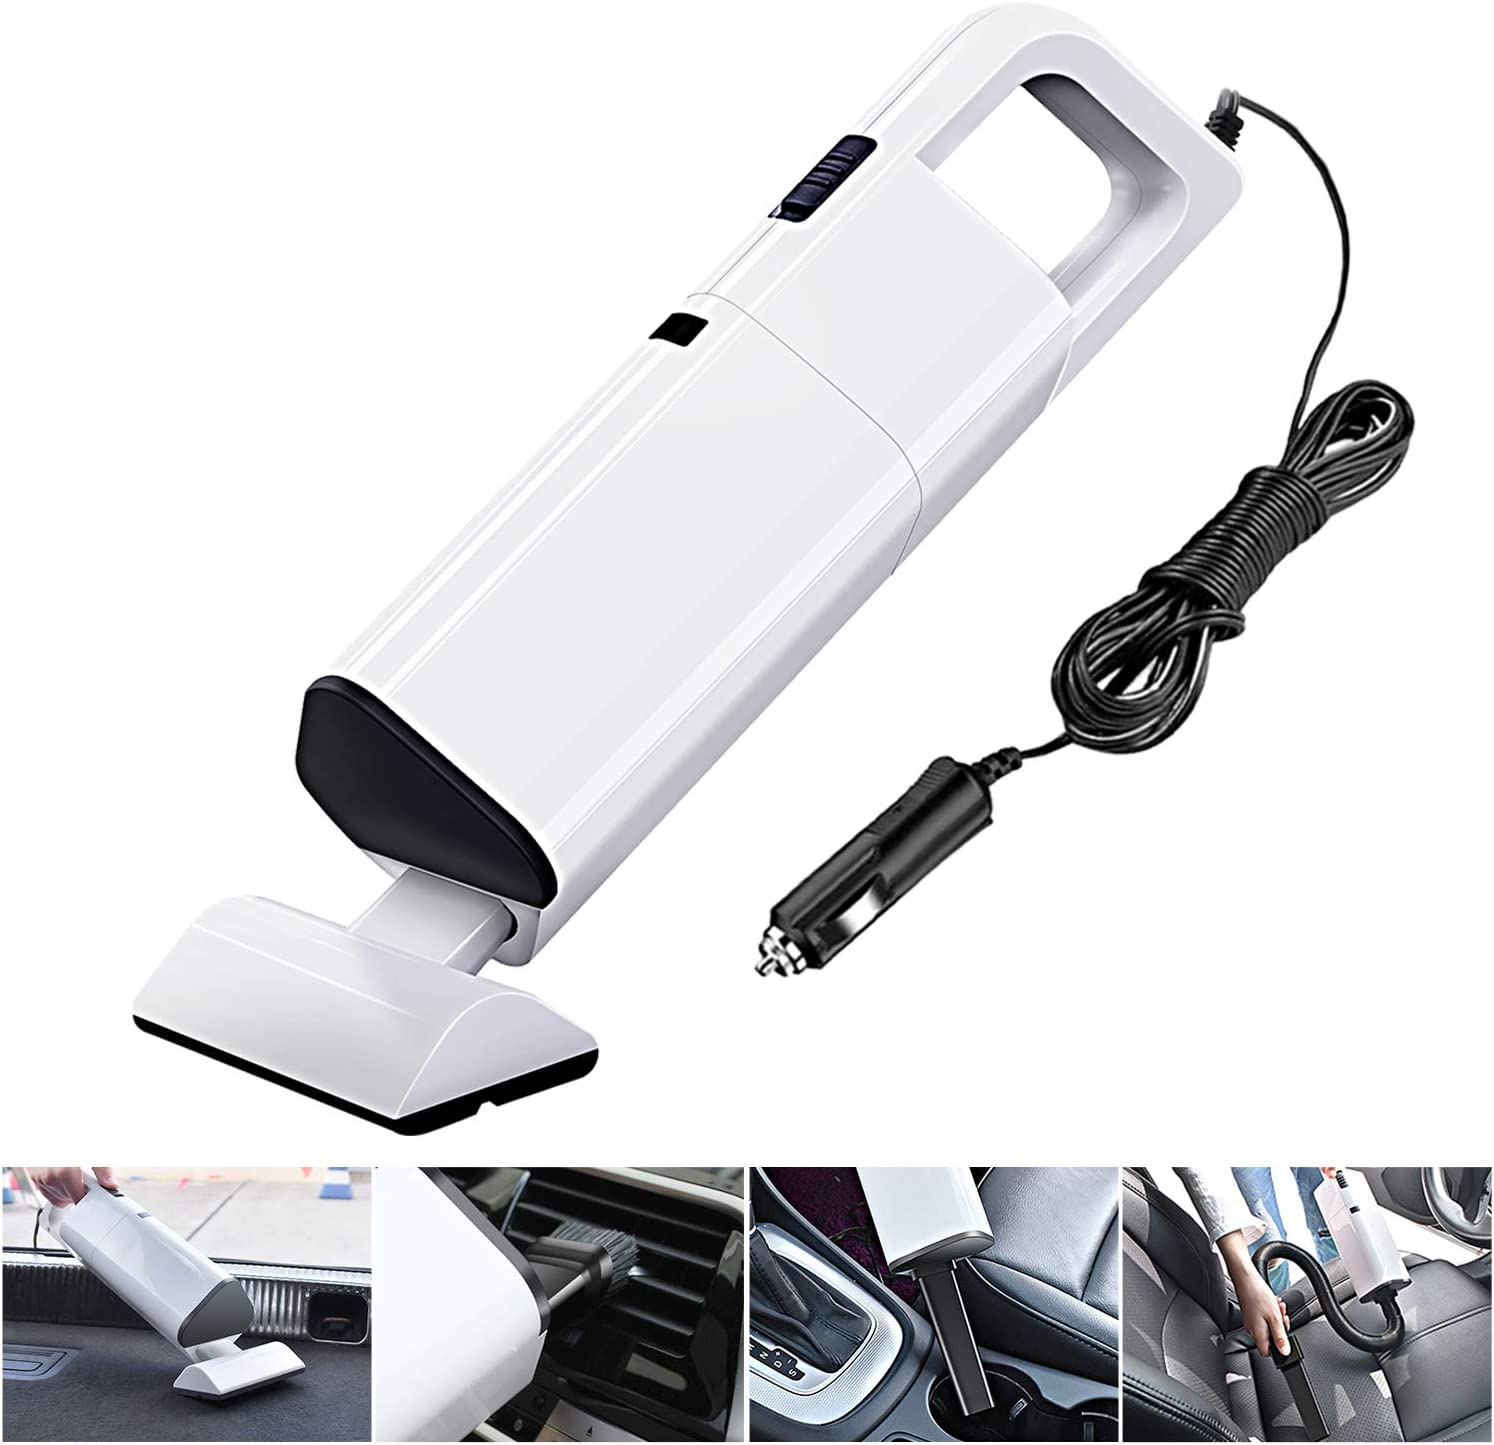 Car Vacuum Cleaner, Corded Car Vacuum, DC 12V 120W Car Vacuum High Powered 4000PA Suction, Portable Light-Weight Handheld Automotive Wet Dry Car Vacuum with 360° Cyclonic Design 5M(16.4FT) Power Cord